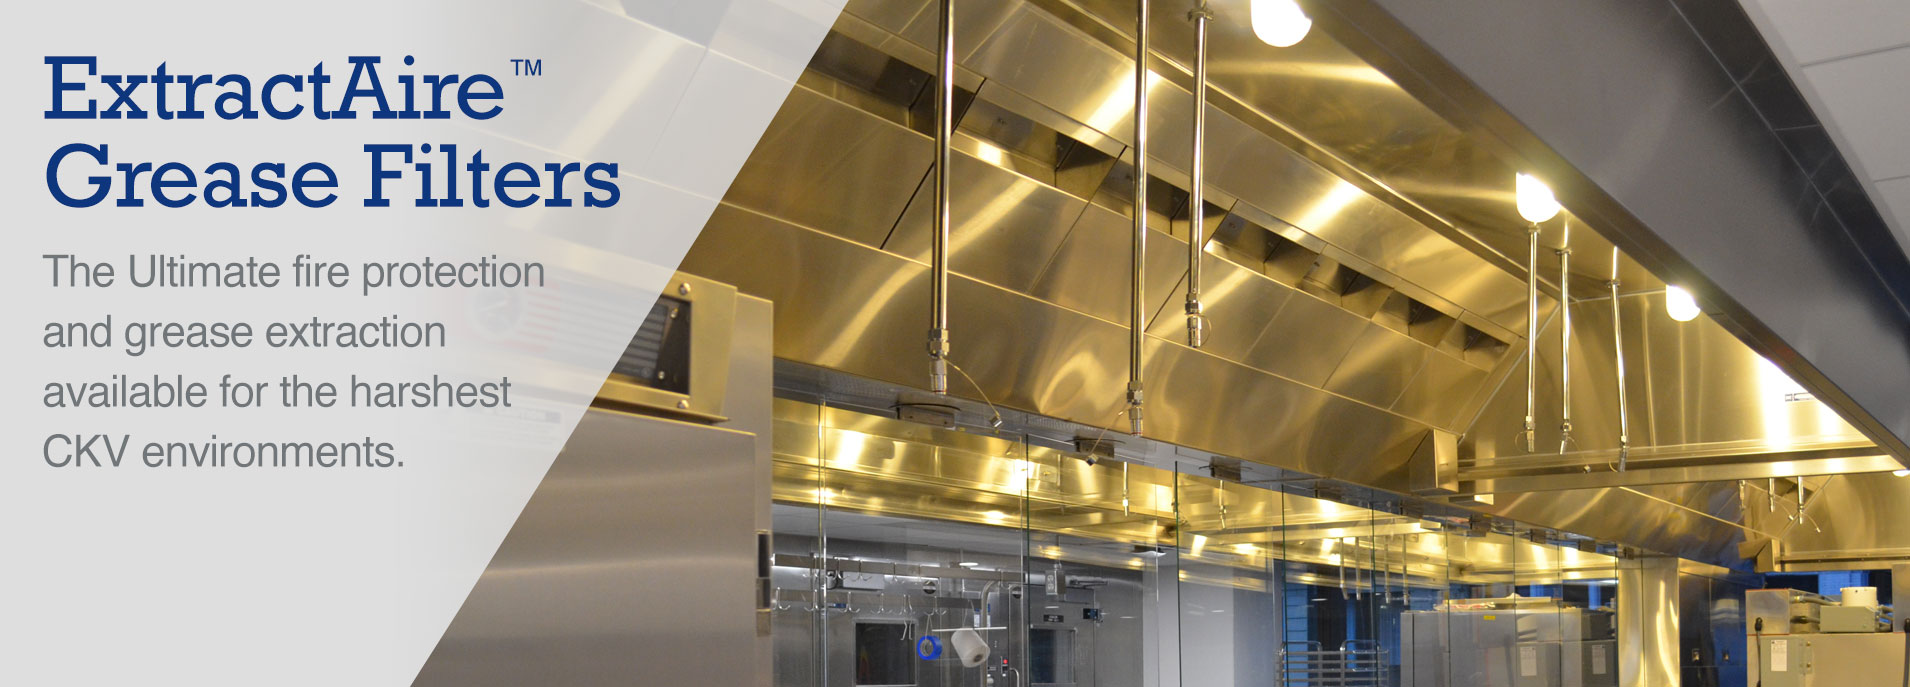 ExtractAire Grease Filters for Commercial Kitchen Hoods